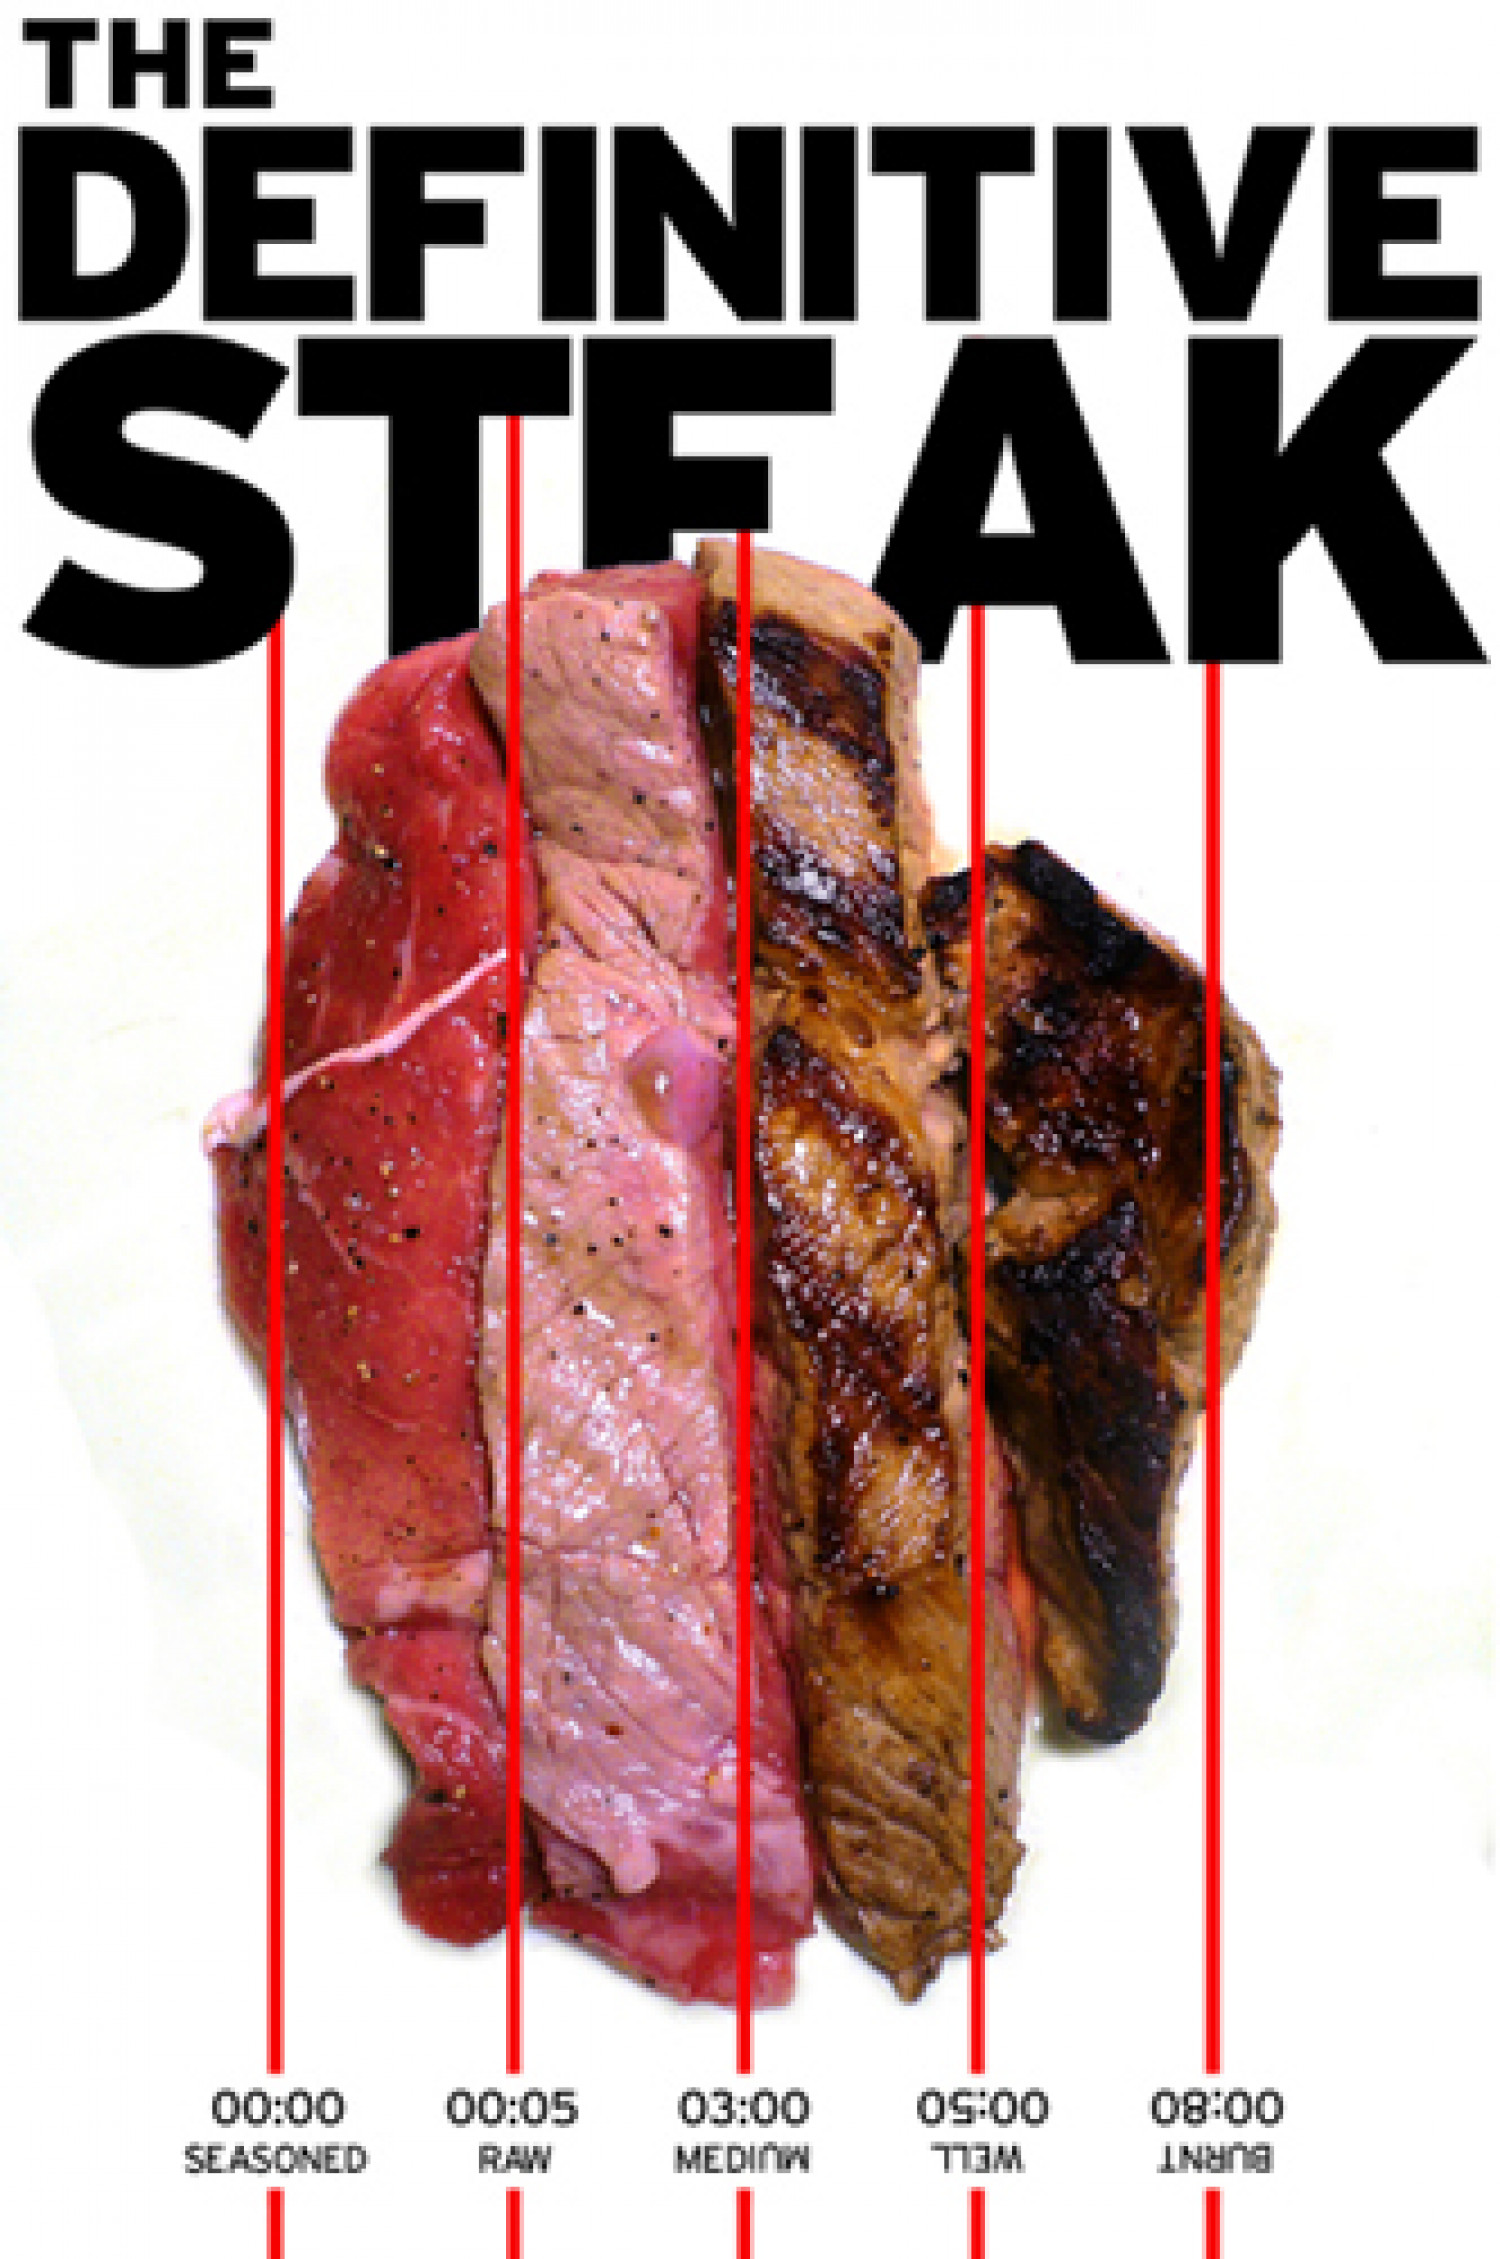 Doneness of Steak Infographic